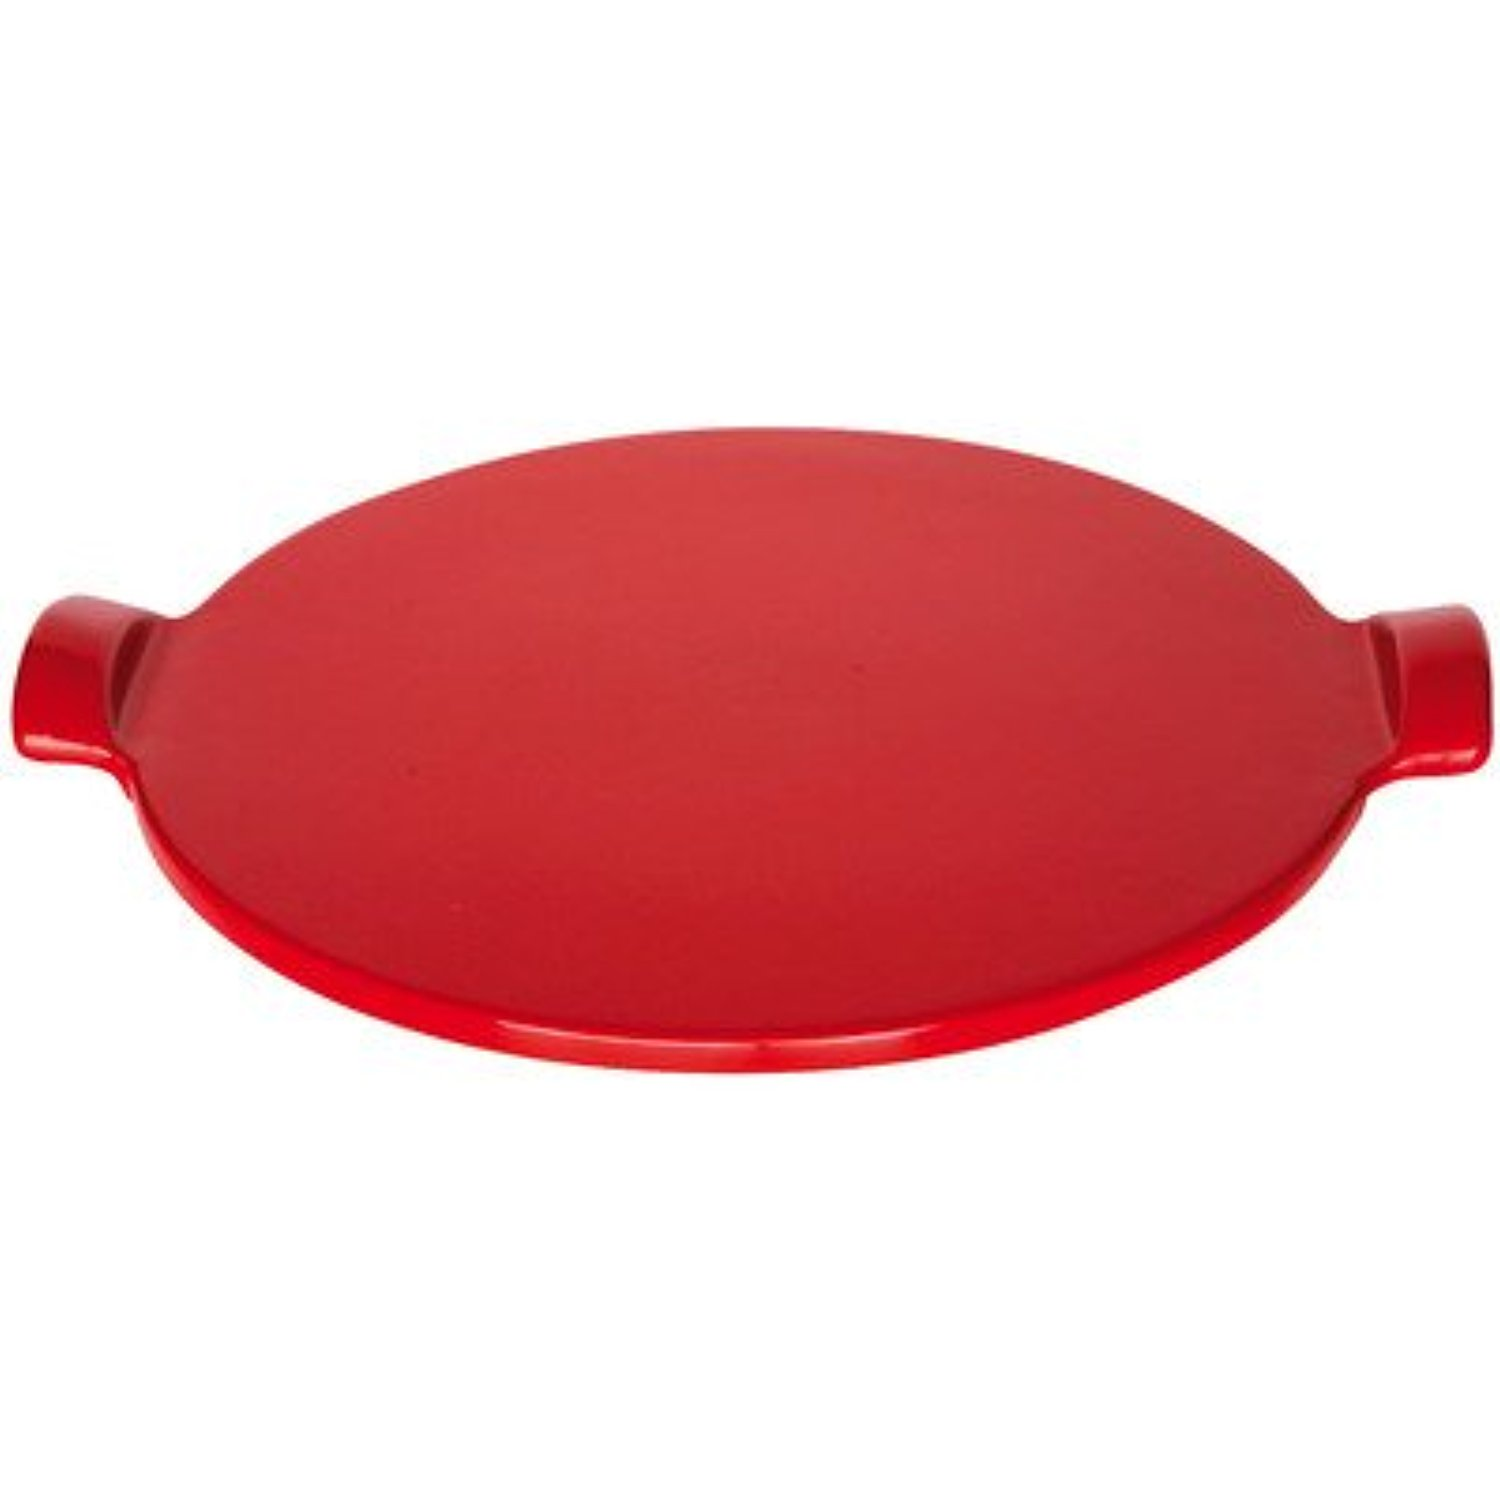 Emile Henry Flame Top Pizza Stone, Red by Emile Henry